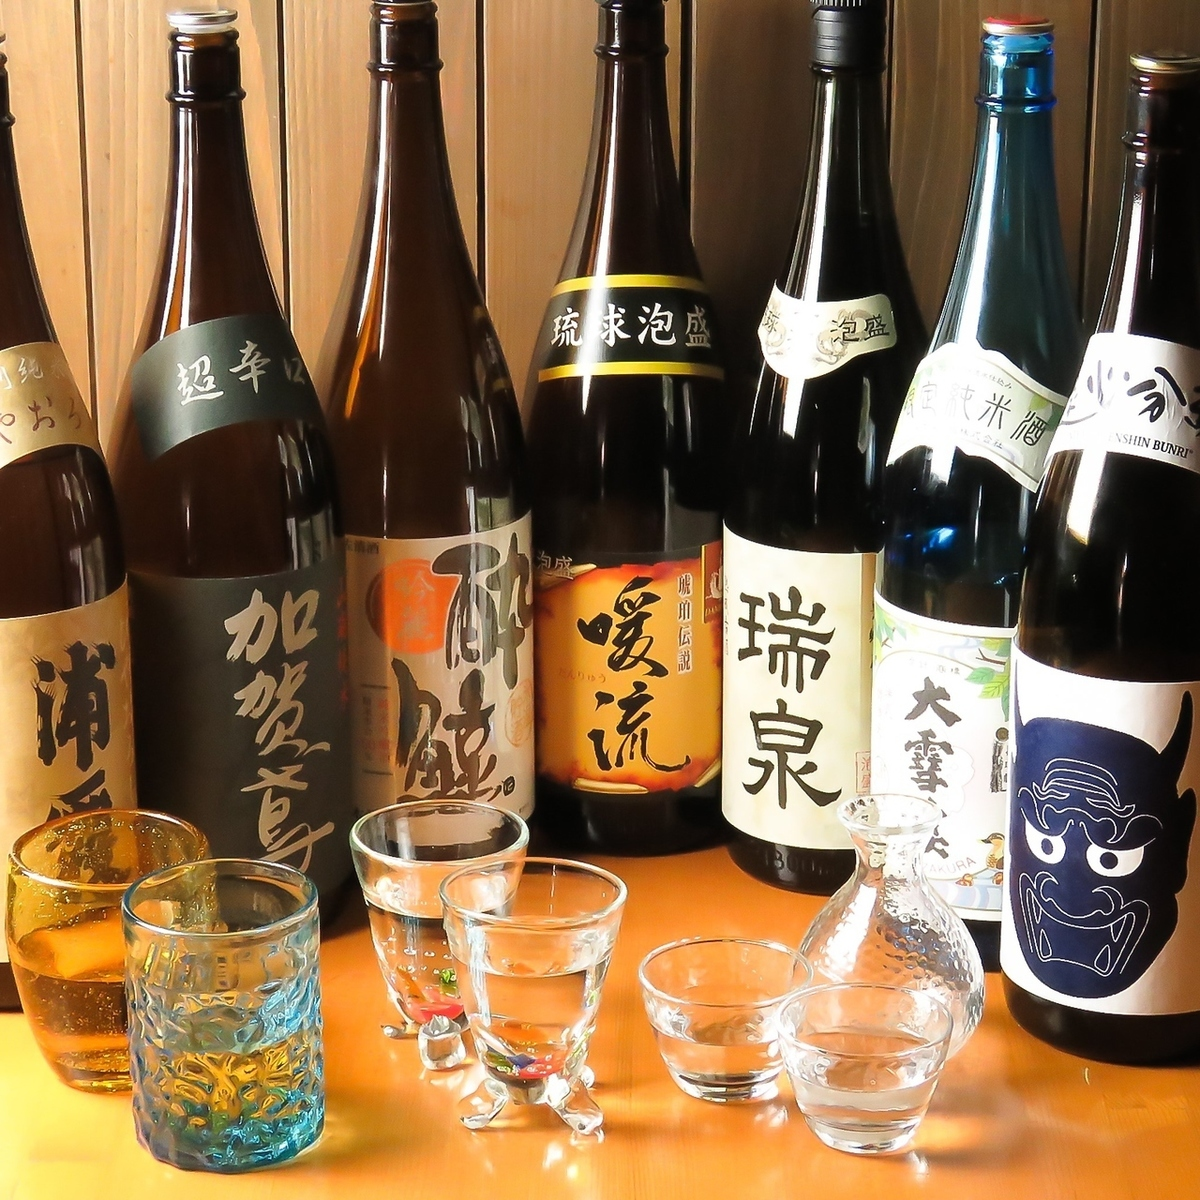 Shochu and Awamori will be replaced by seasons and purchase! ♪ The type of shochu will change due to customer's introduction